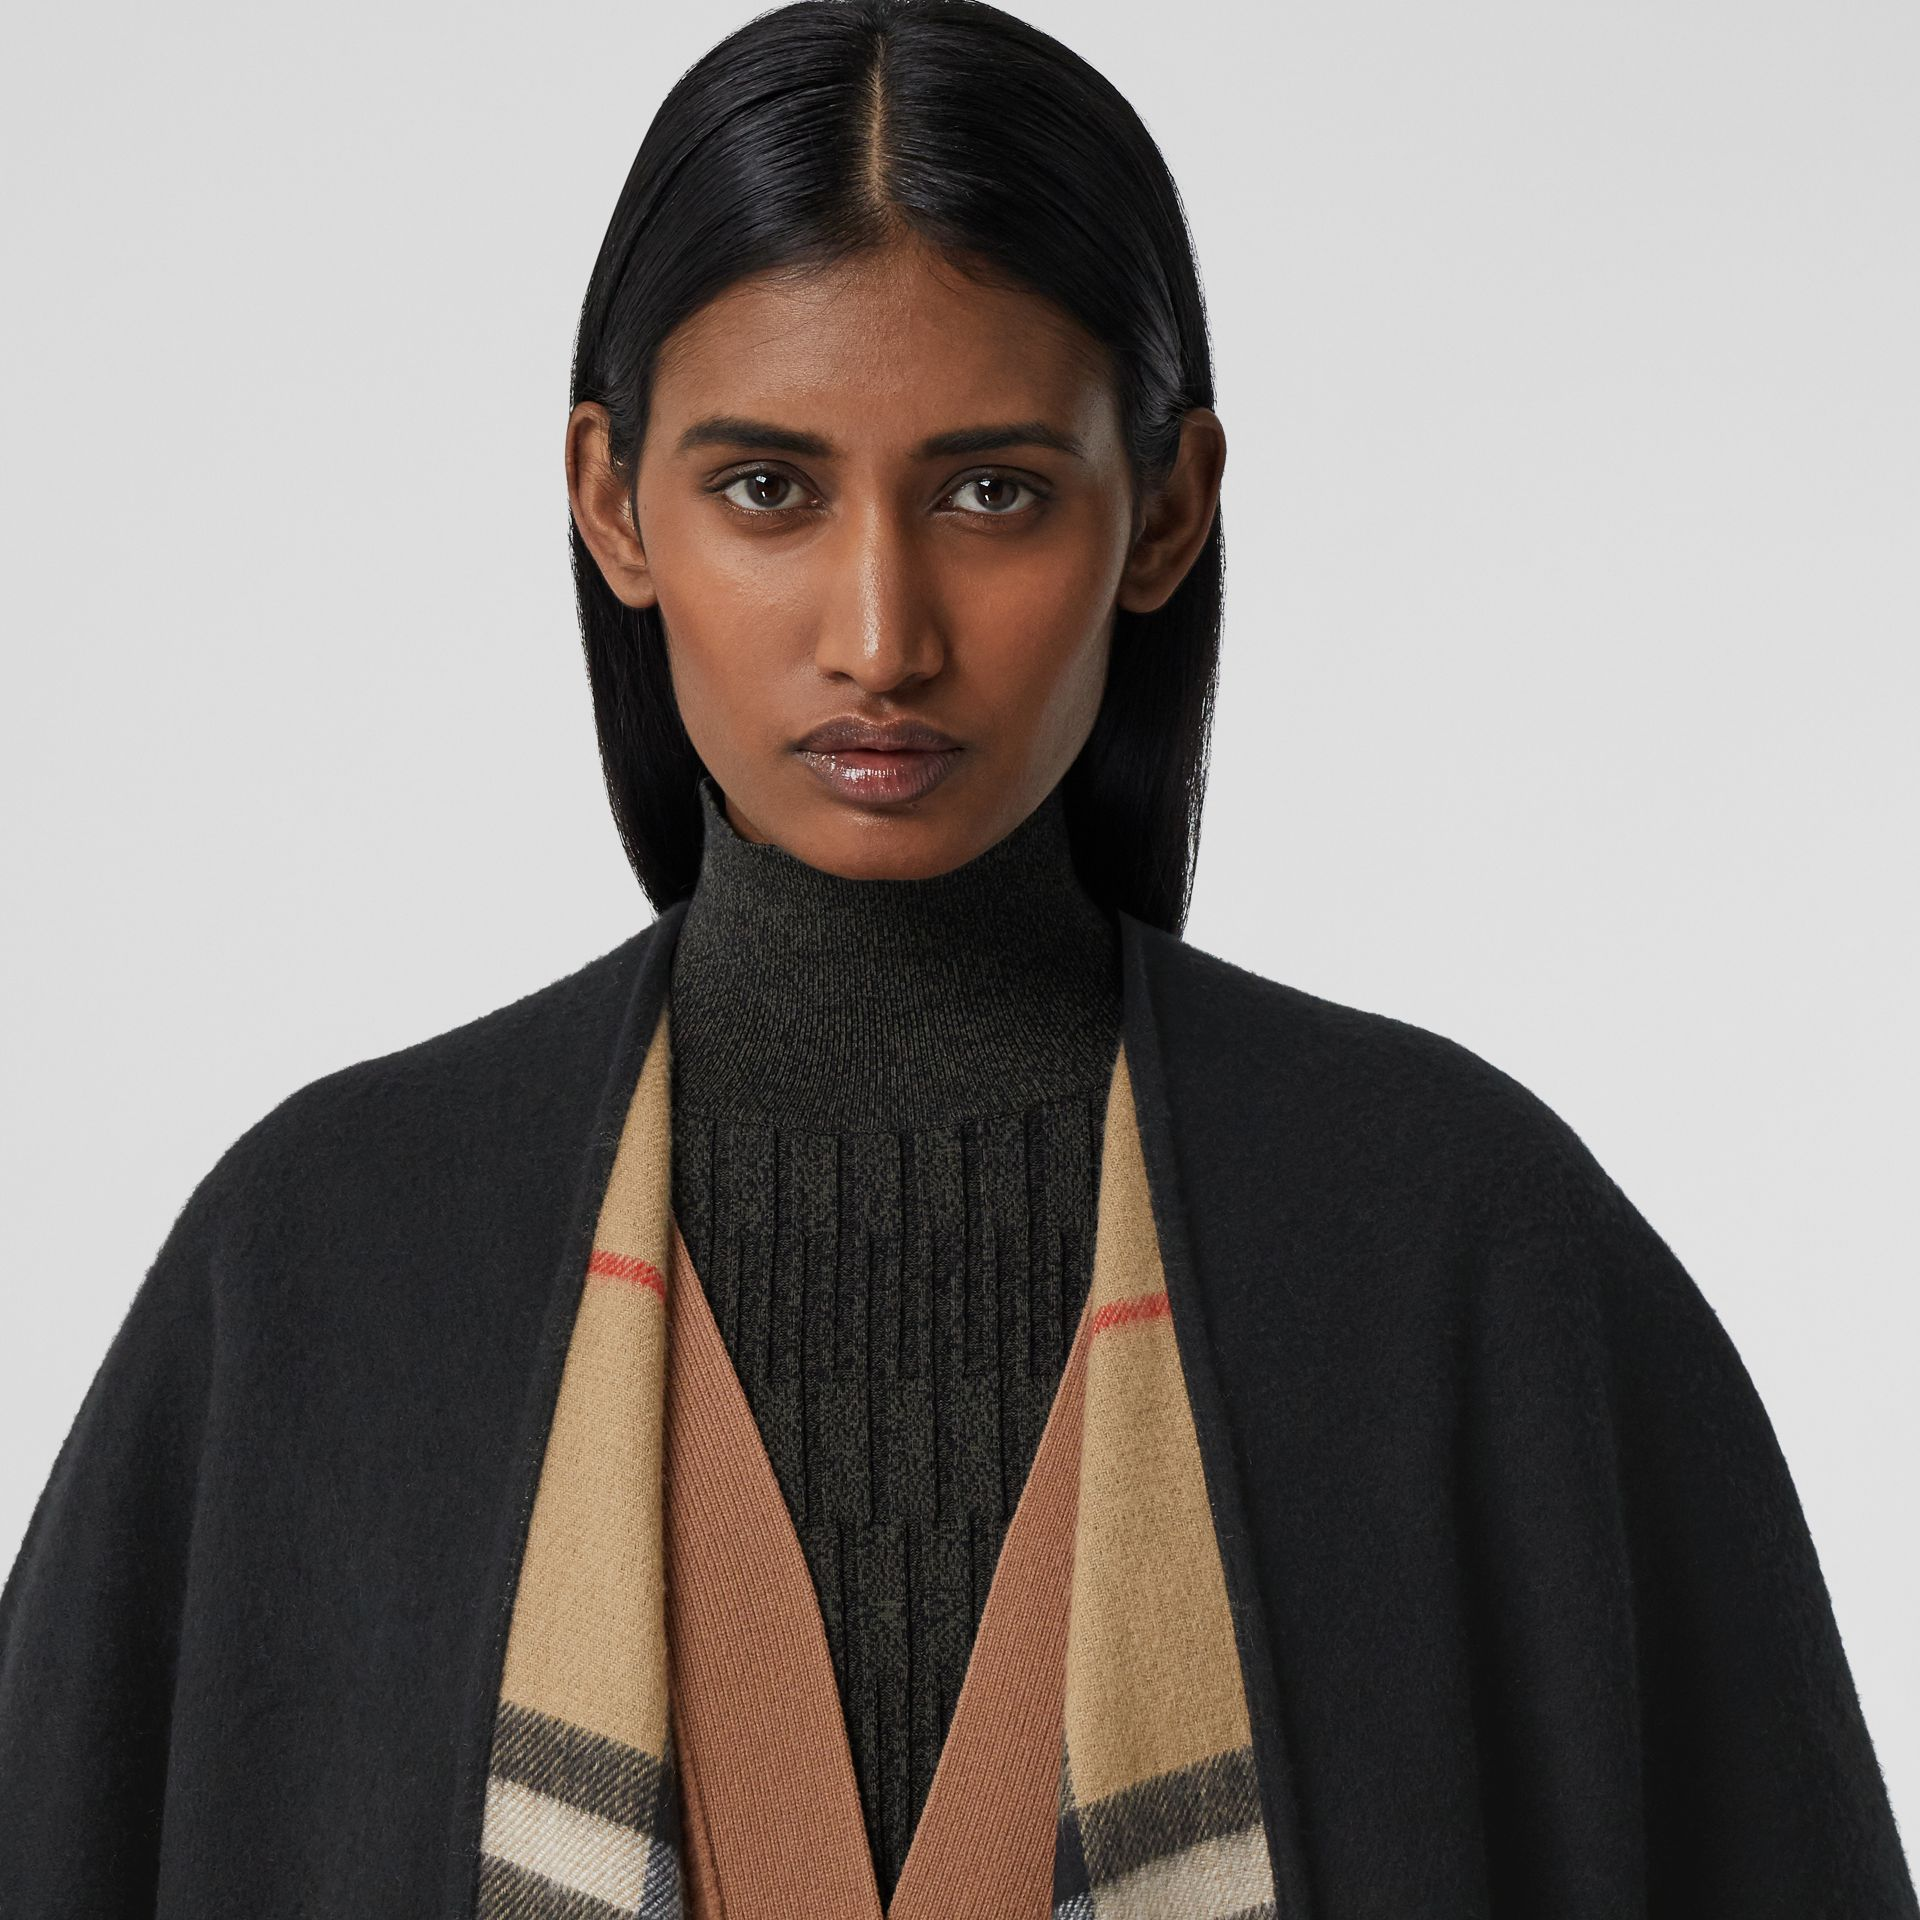 Check-lined Cashmere Merino Wool Cape in Black - Women | Burberry - gallery image 1